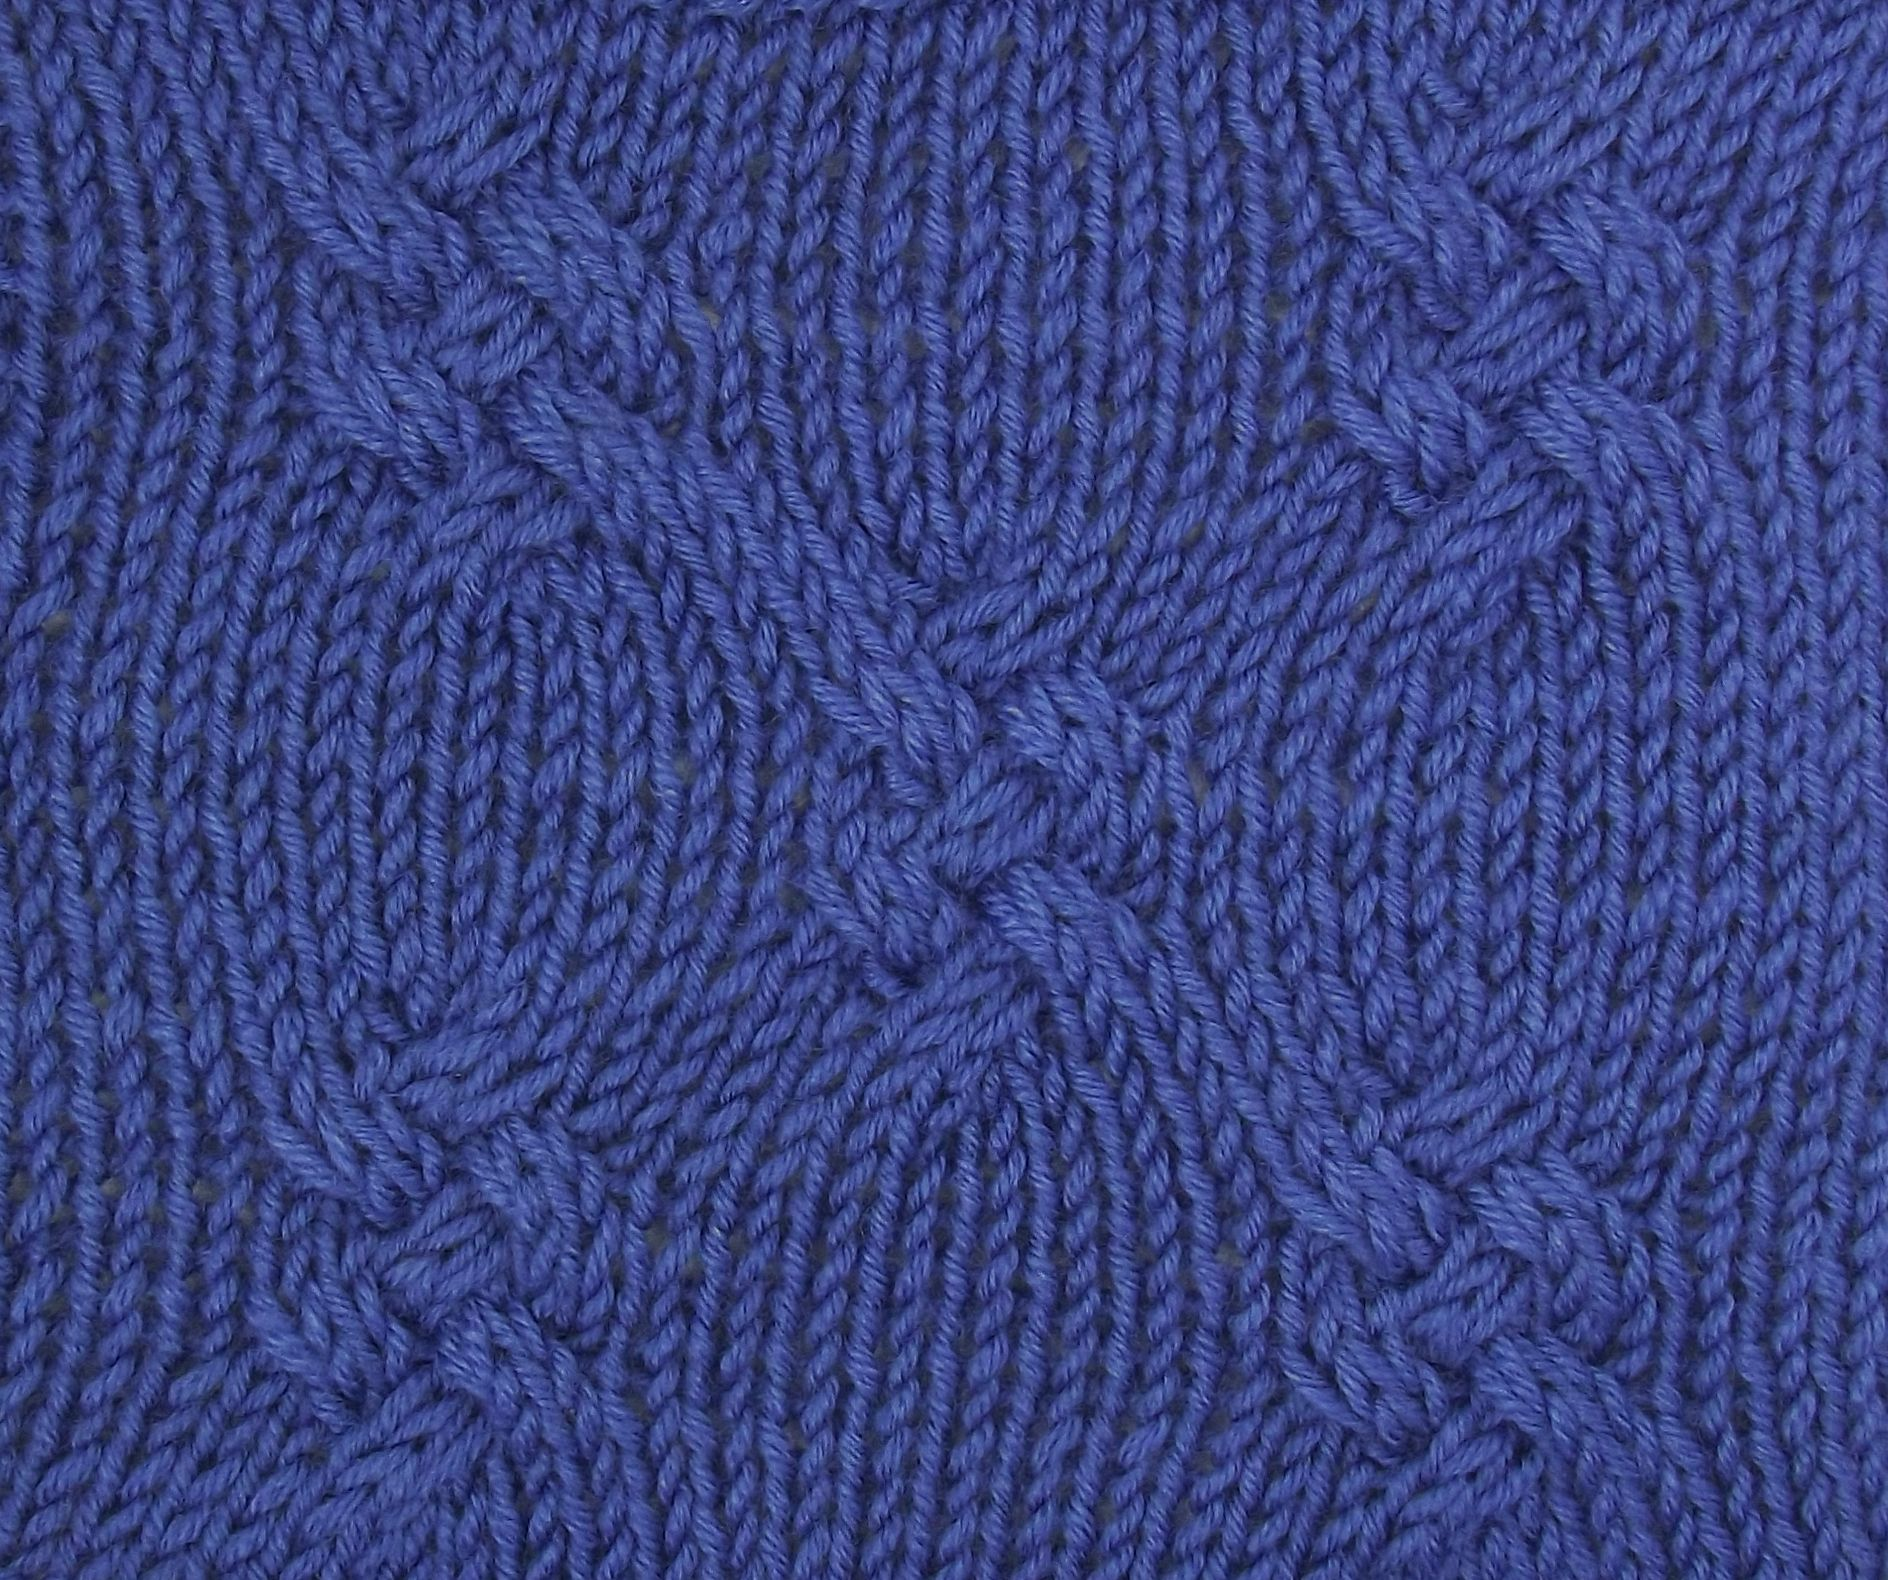 Alternating Cabled Knots offers a unique, allover cable pattern. It ...